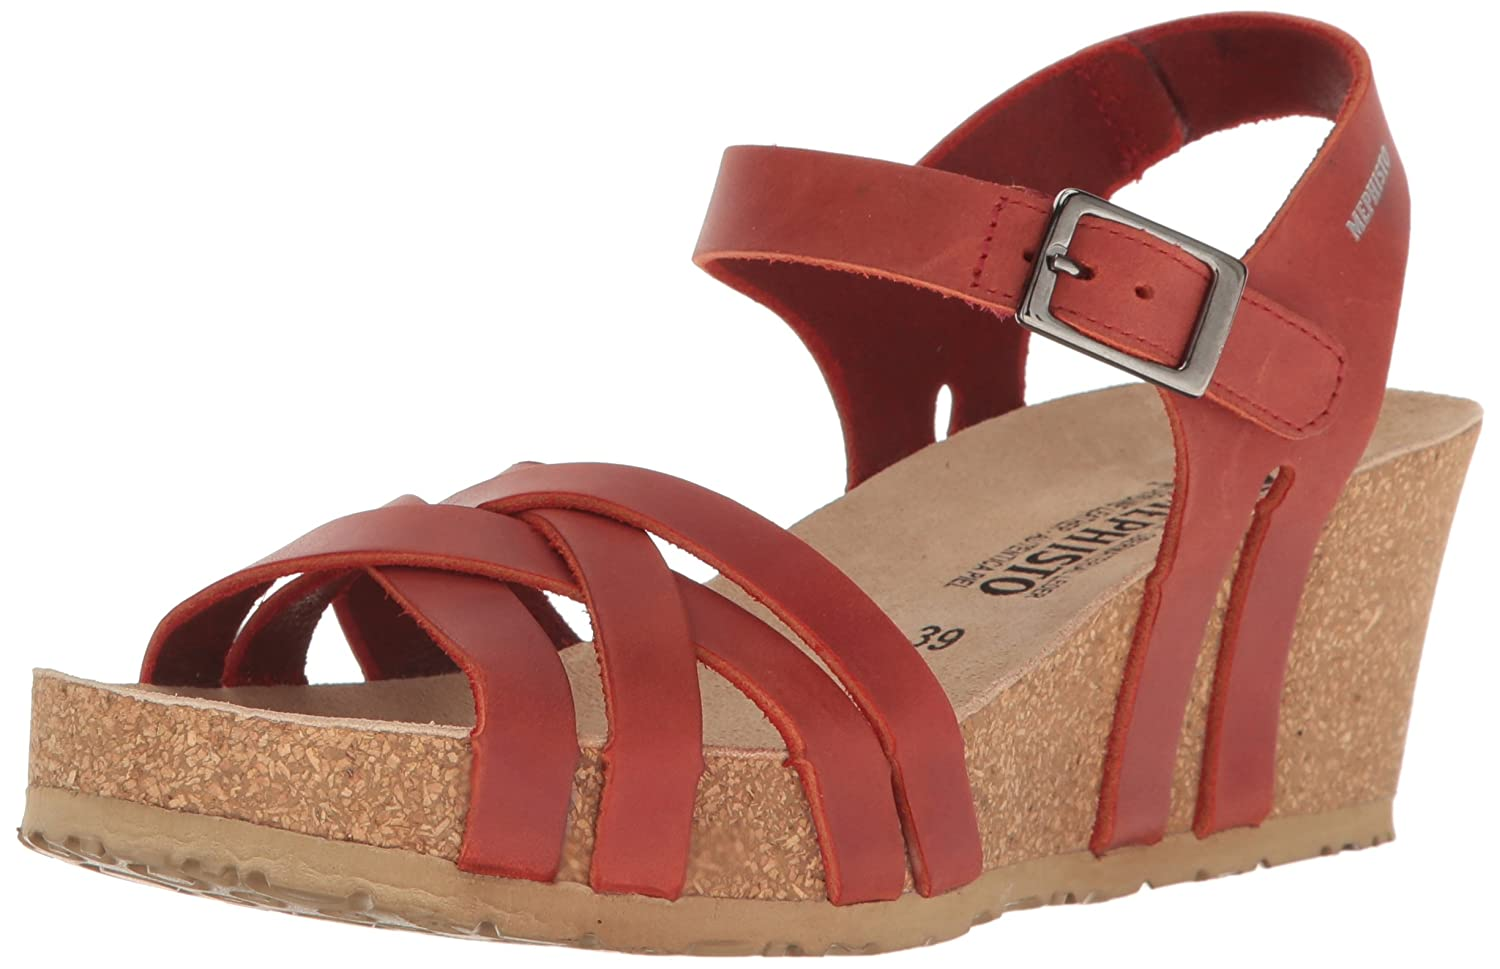 Mephisto Women's Lanny Wedge Sandal B01KYK9NOY 6 B(M) US|Red Scratch